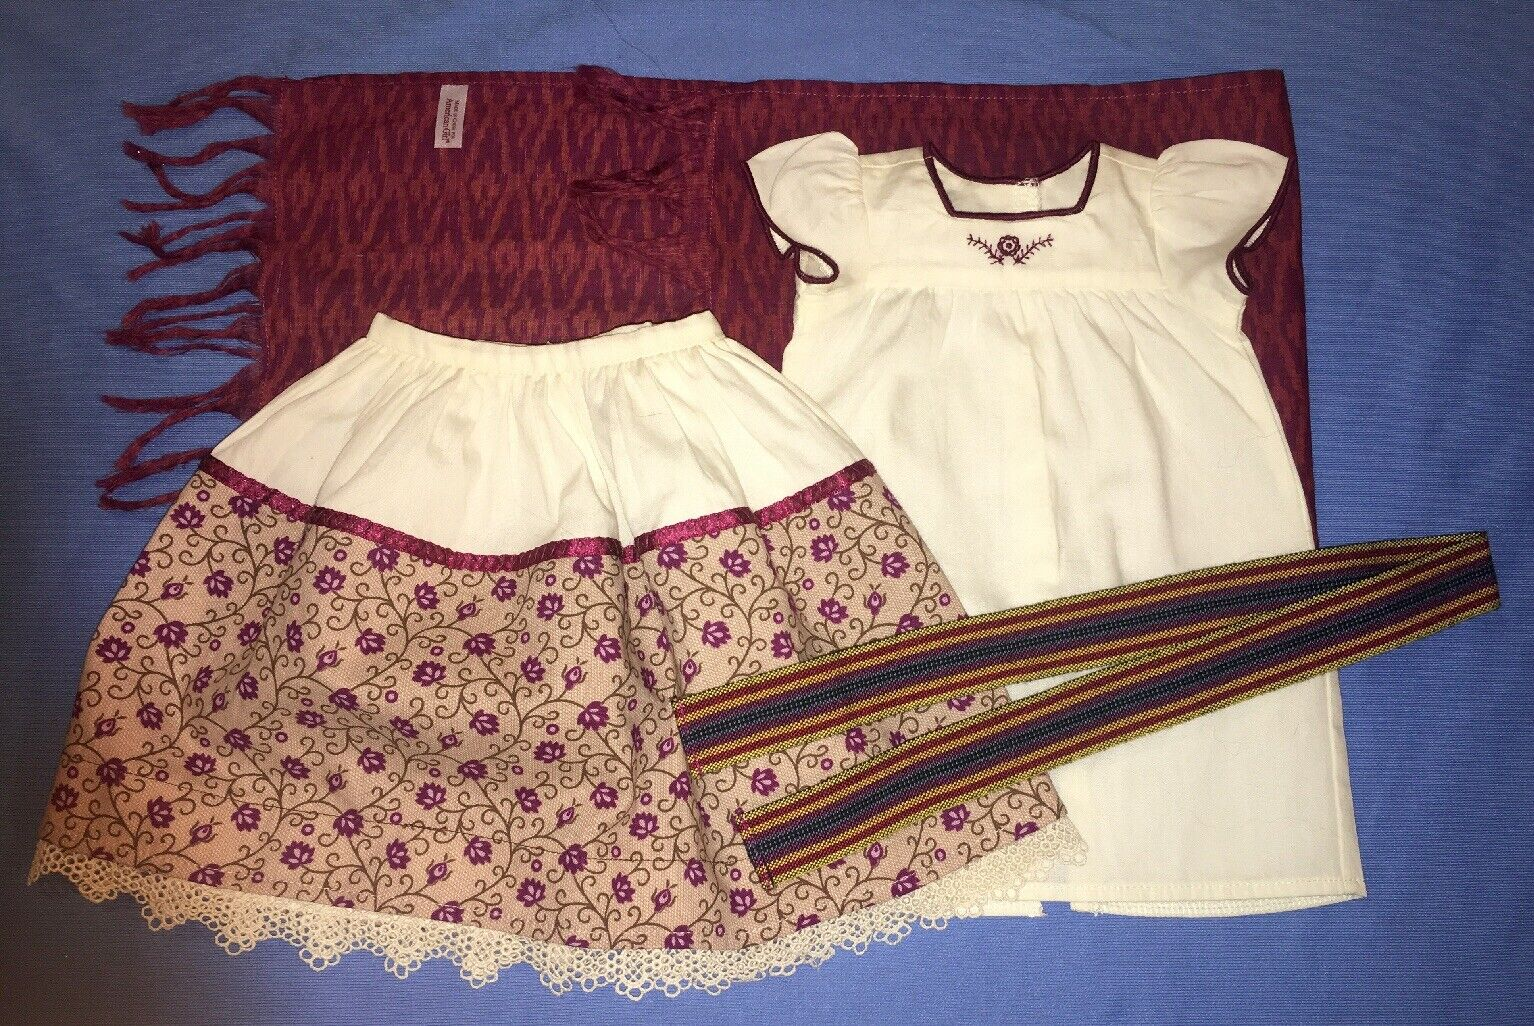 American Girl Josefina Weaving Outfit with Rebozo, Camisa, Belt COMPLETE